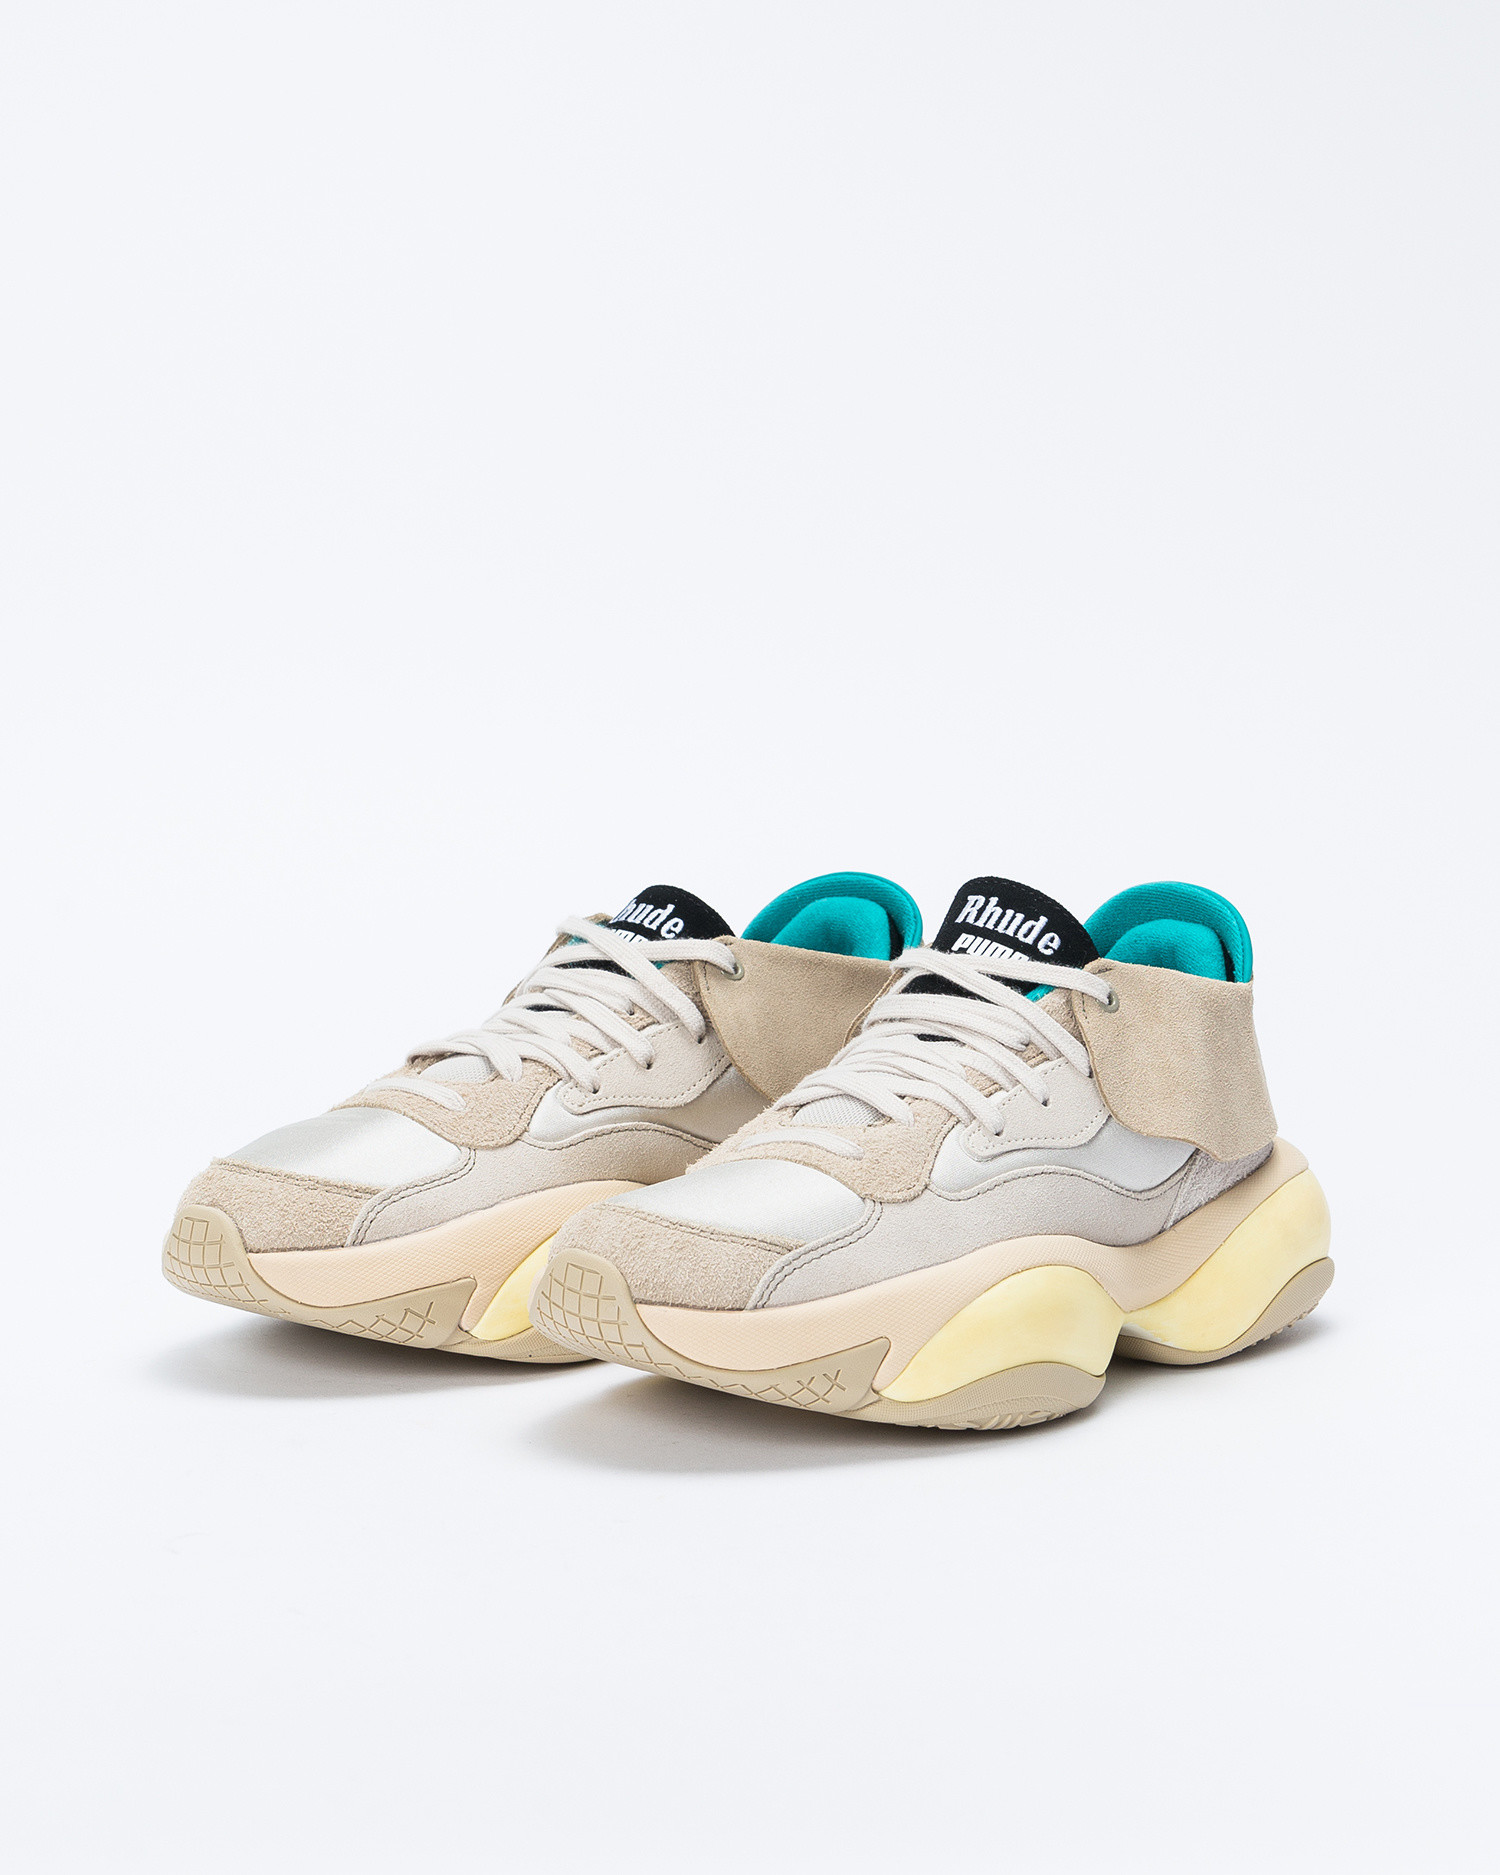 Puma x Rhude Alteration Chinchilla/Whisper white